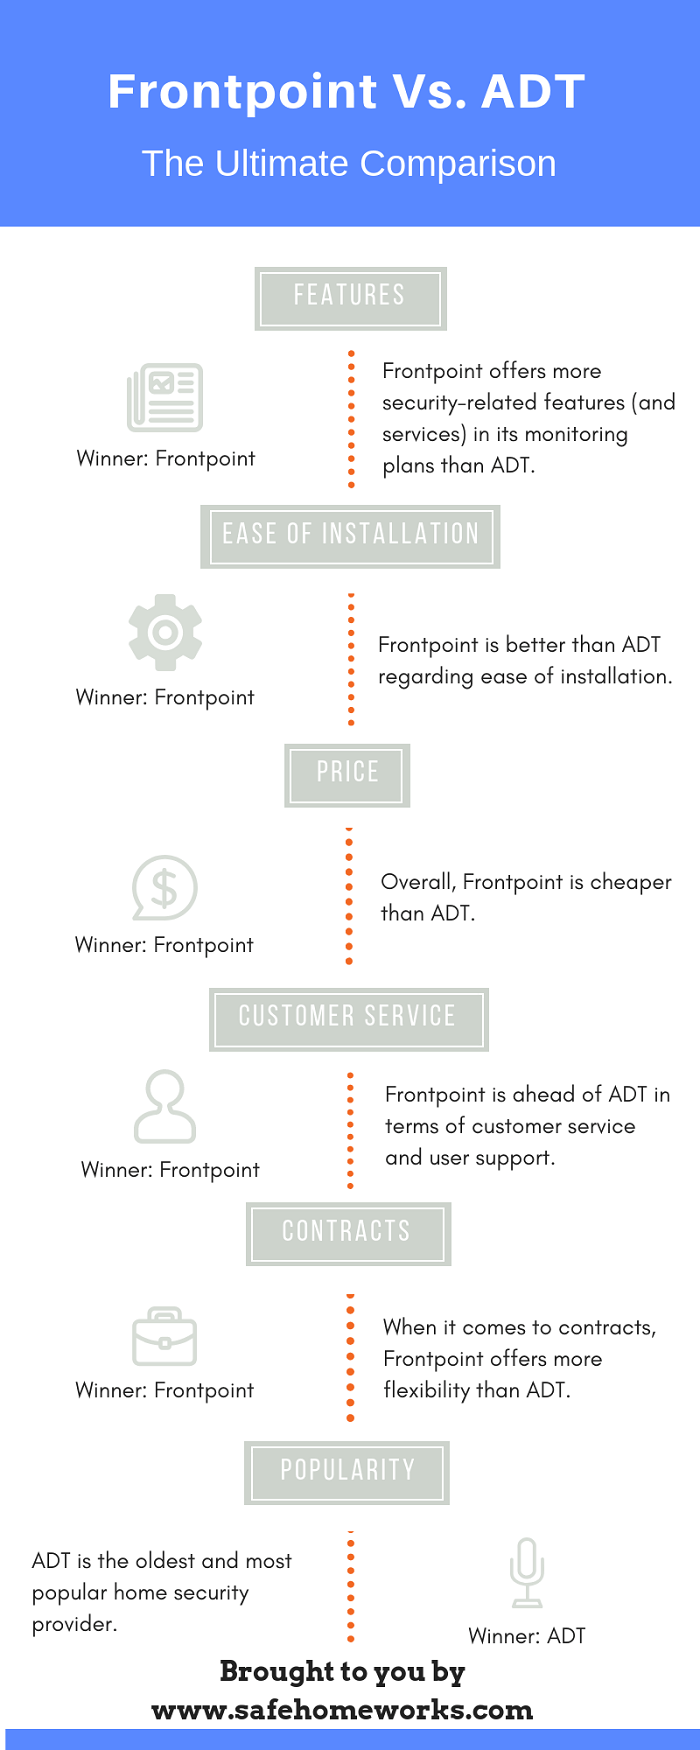 Frontpoint VS ADT Summary Infographic